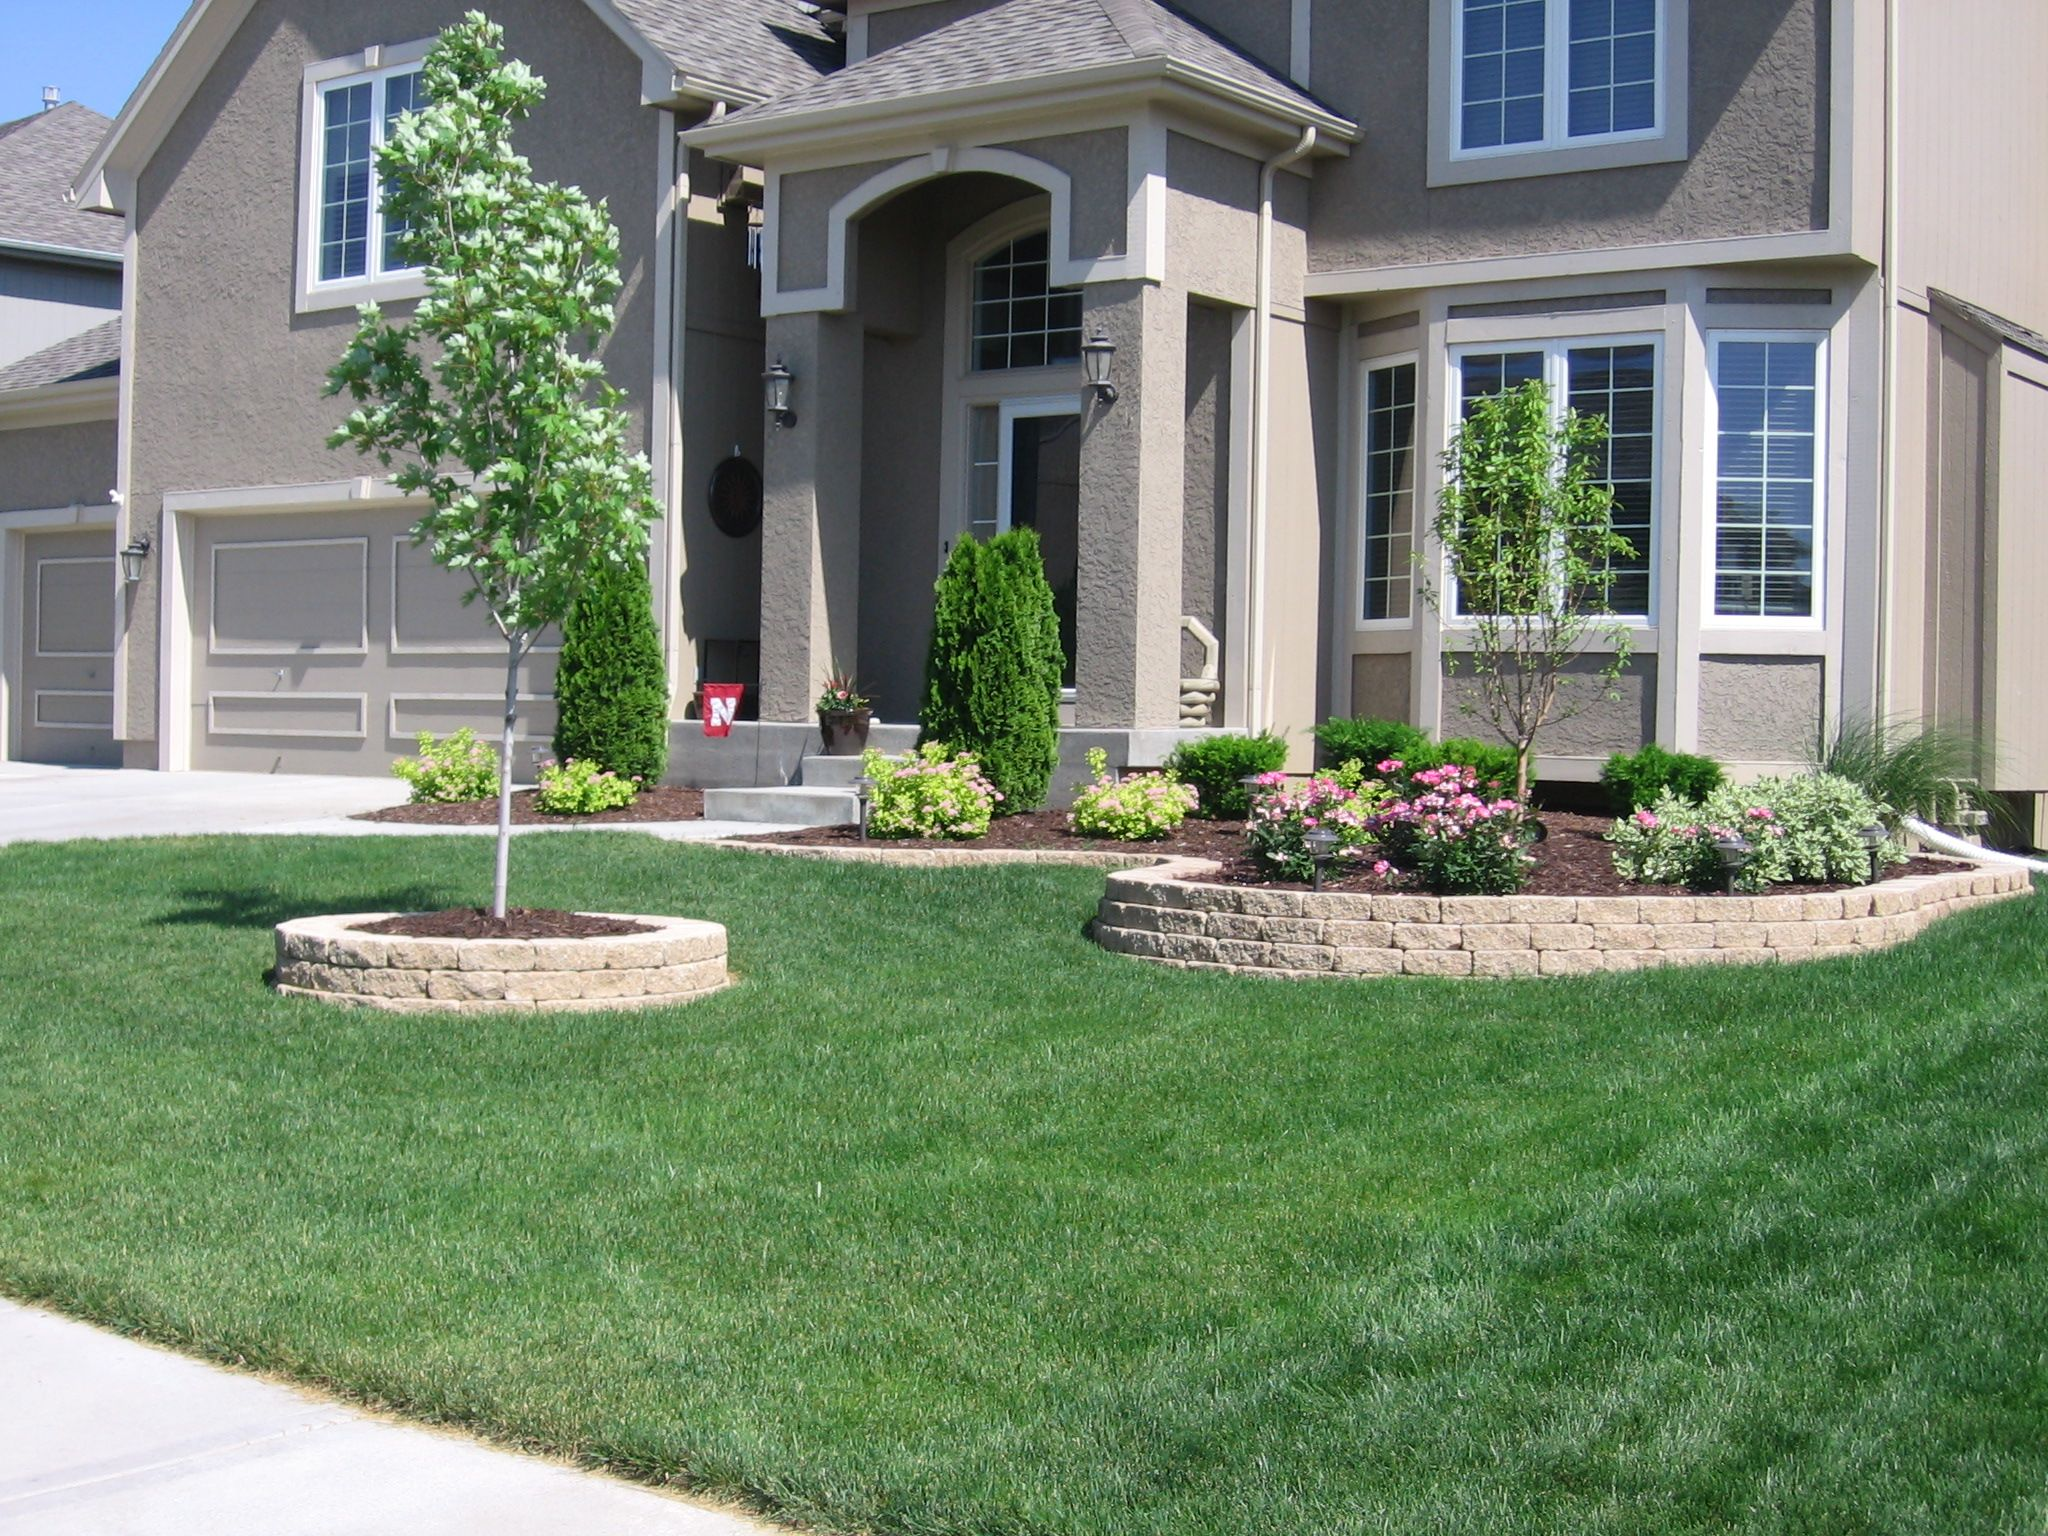 corner lot landscape photos ideas for landscaping front yard corner lot pictures - Home Landscaping Design